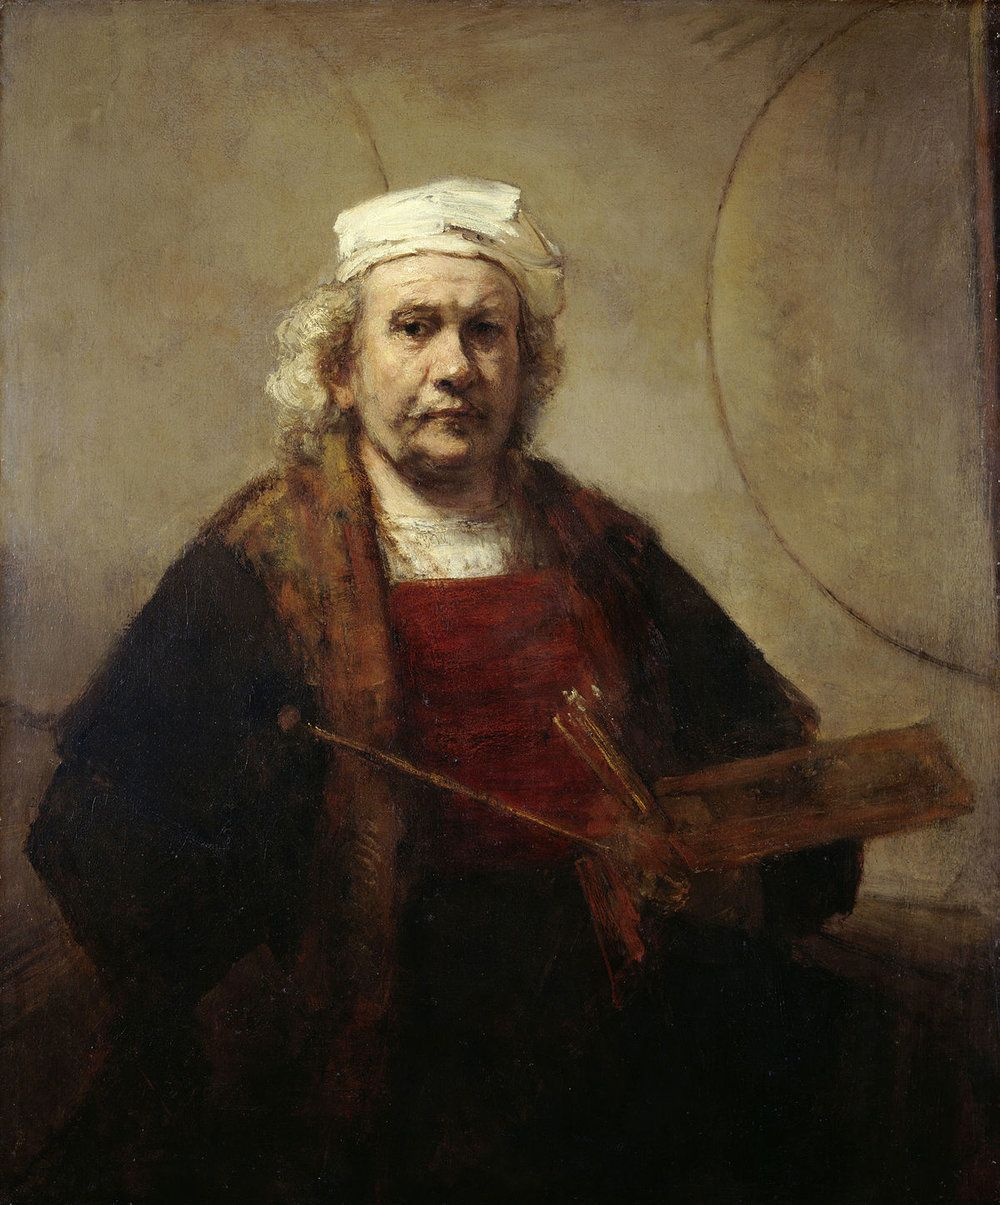 Self Portrait With Two Circles By Rembrandt Famous Art Handmade Painting On Canvas Canvas Paintings Rembrandt Self Portrait Rembrandt Paintings Rembrandt Van Rijn